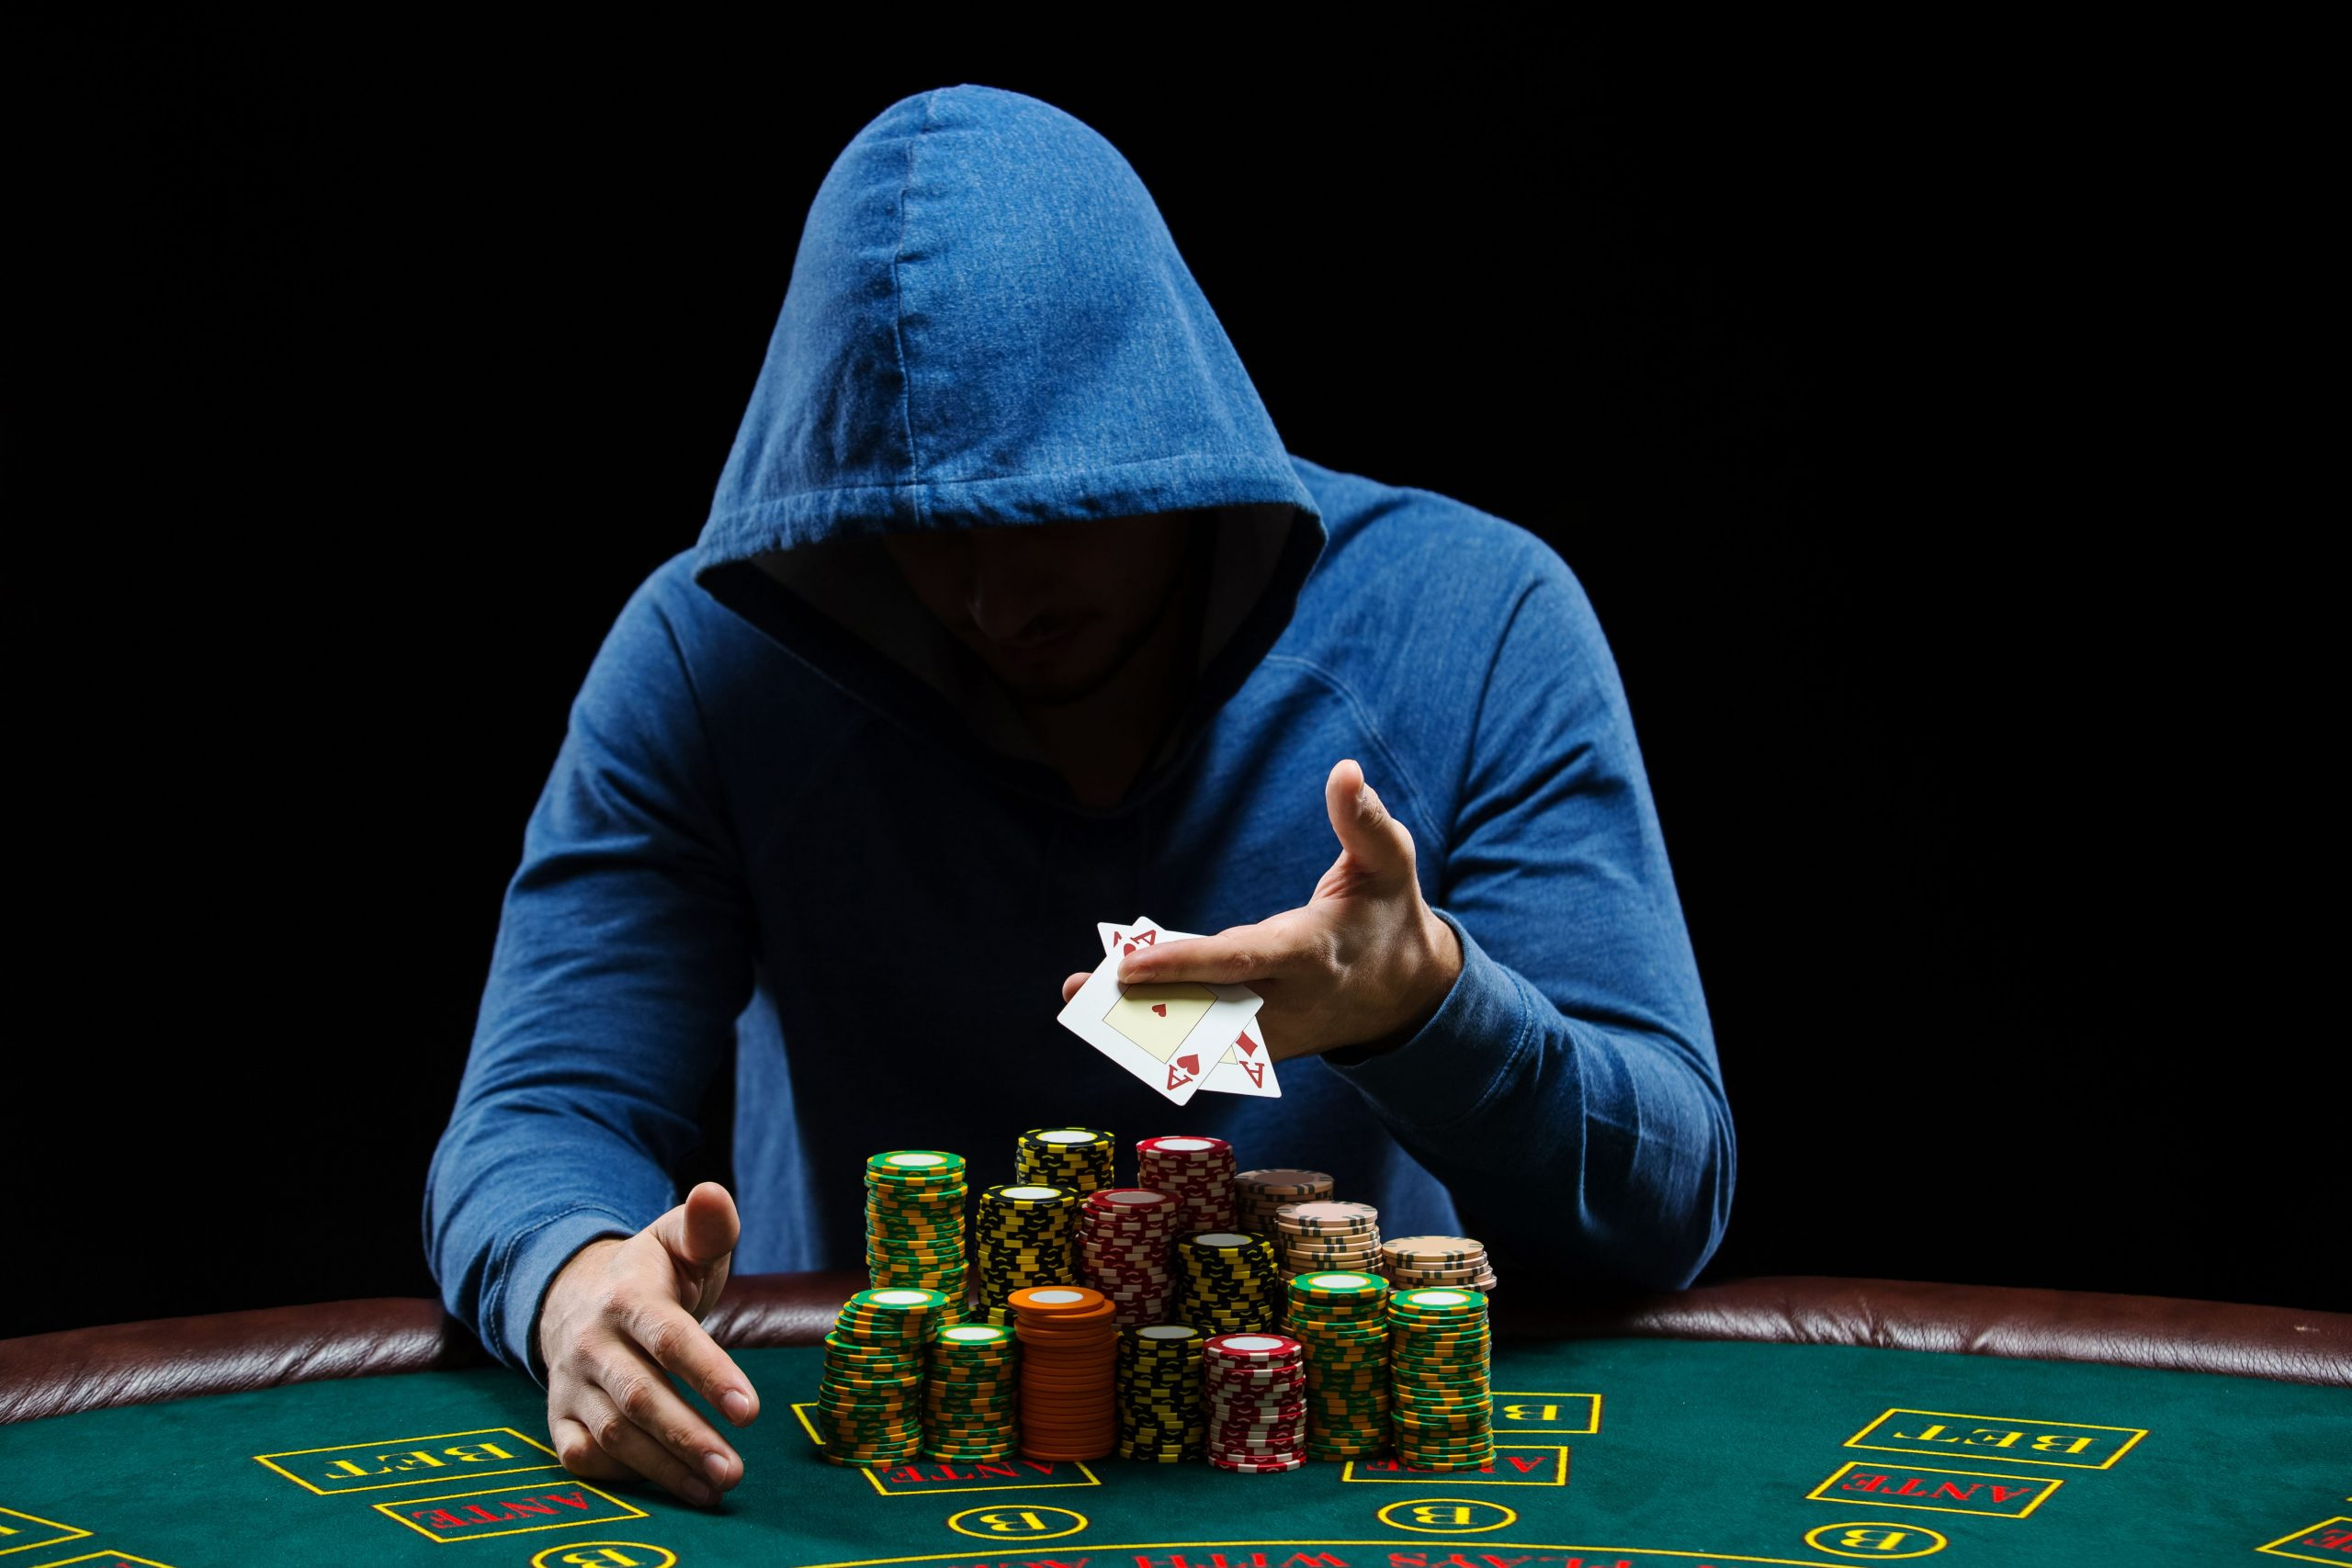 Rules Not To Follow About Gambling